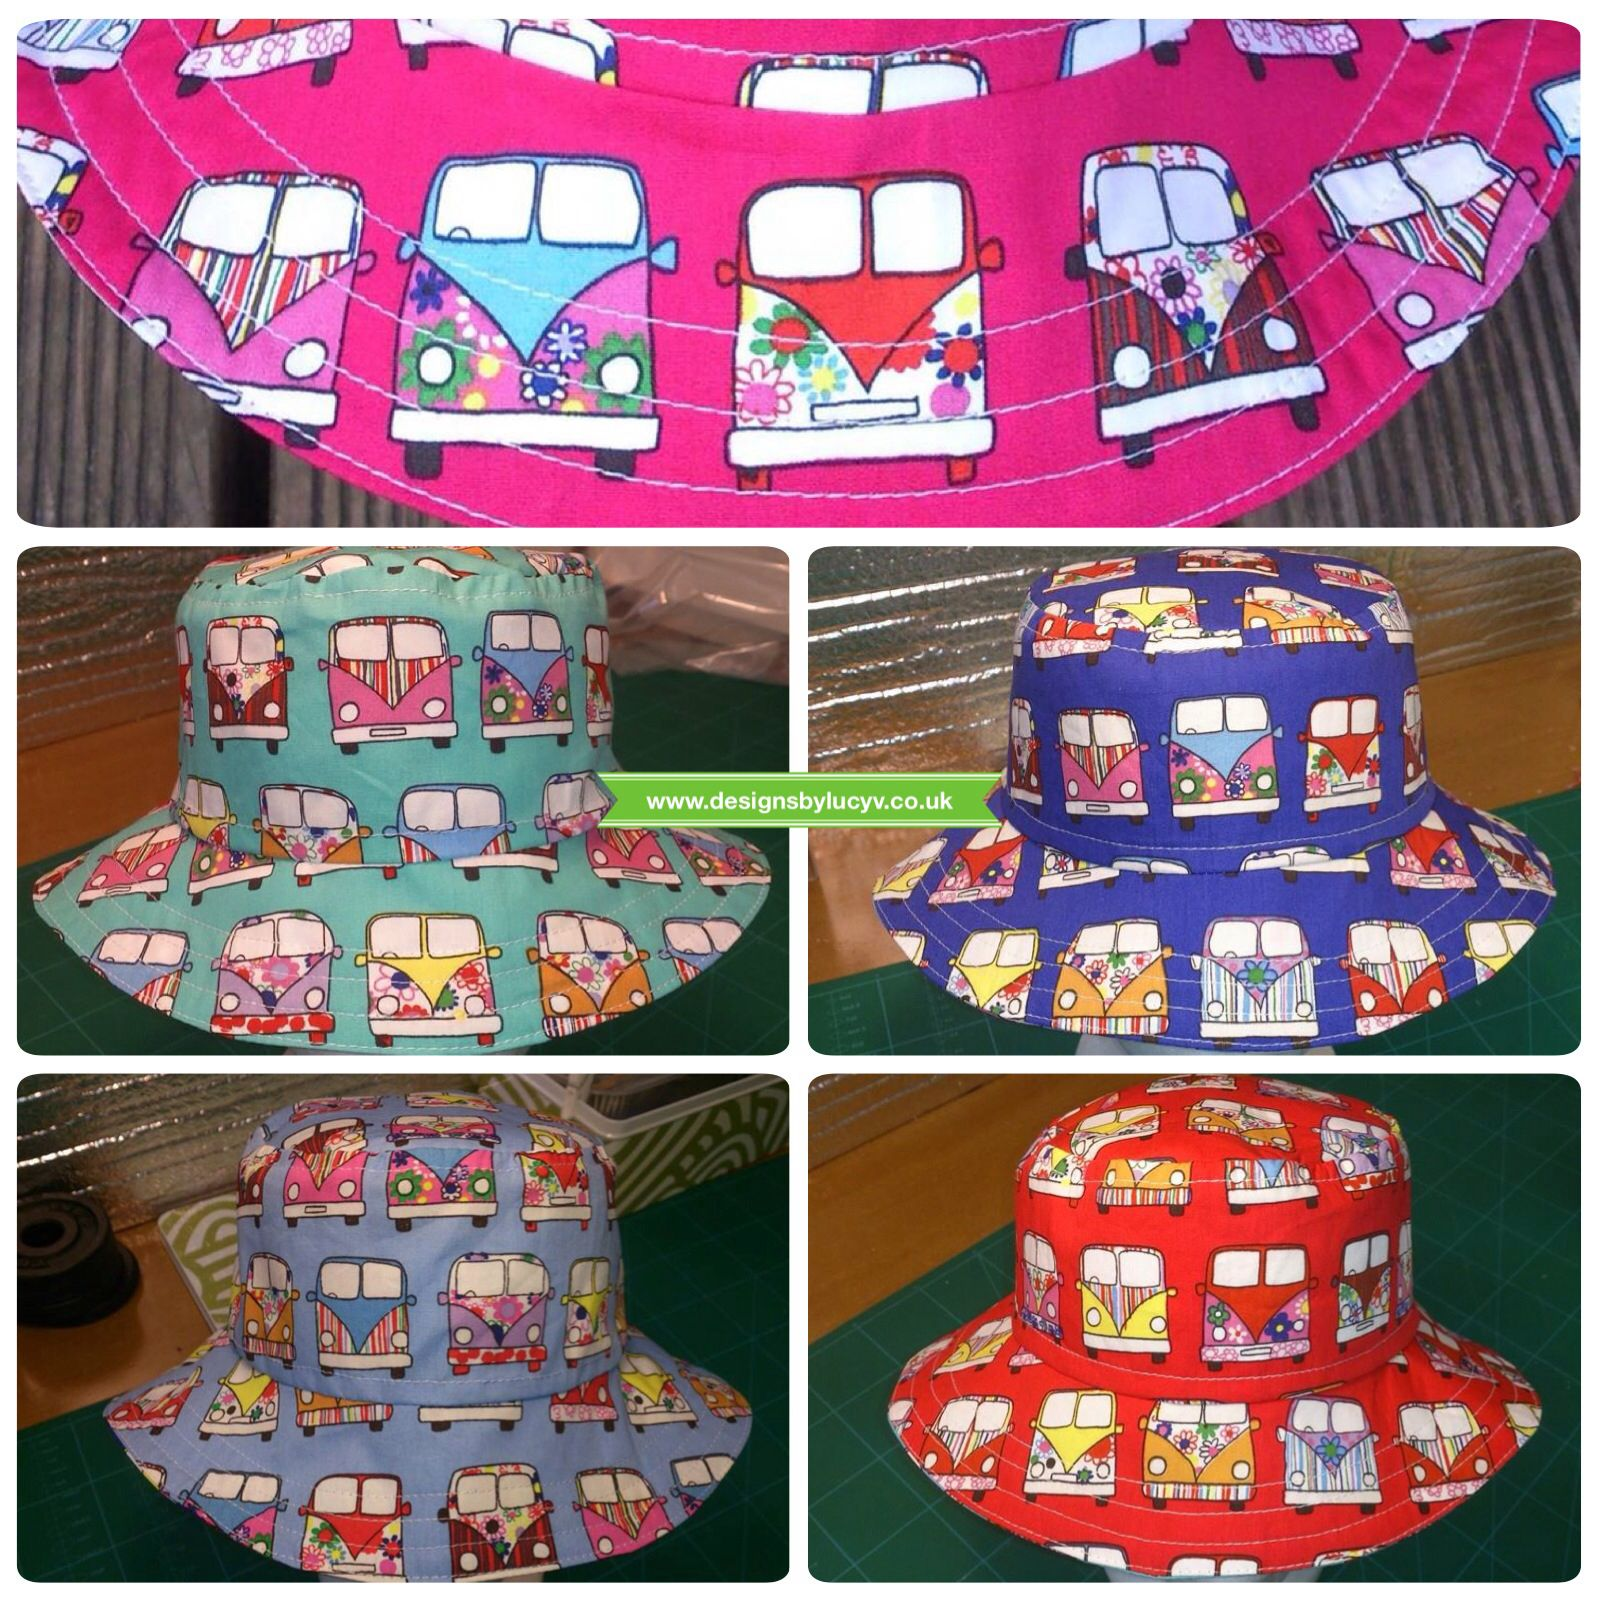 da743522d29 Reversible vw campervan bucket hats from www.designsbylucyv.co.uk on Etsy -  which colour is your favourite